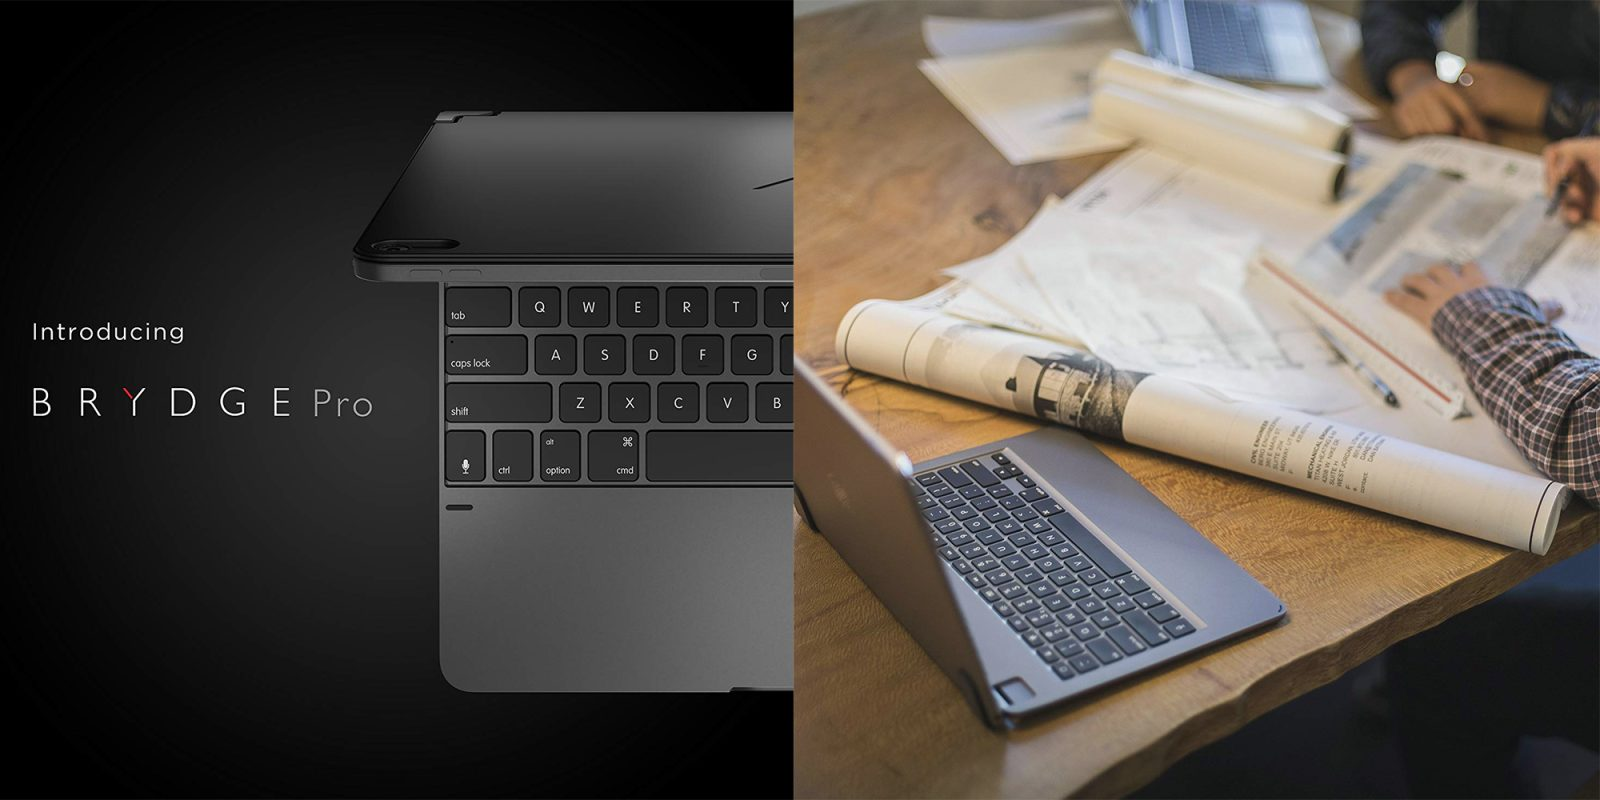 Brydge aluminum iPad keyboards on sale for all models from $50